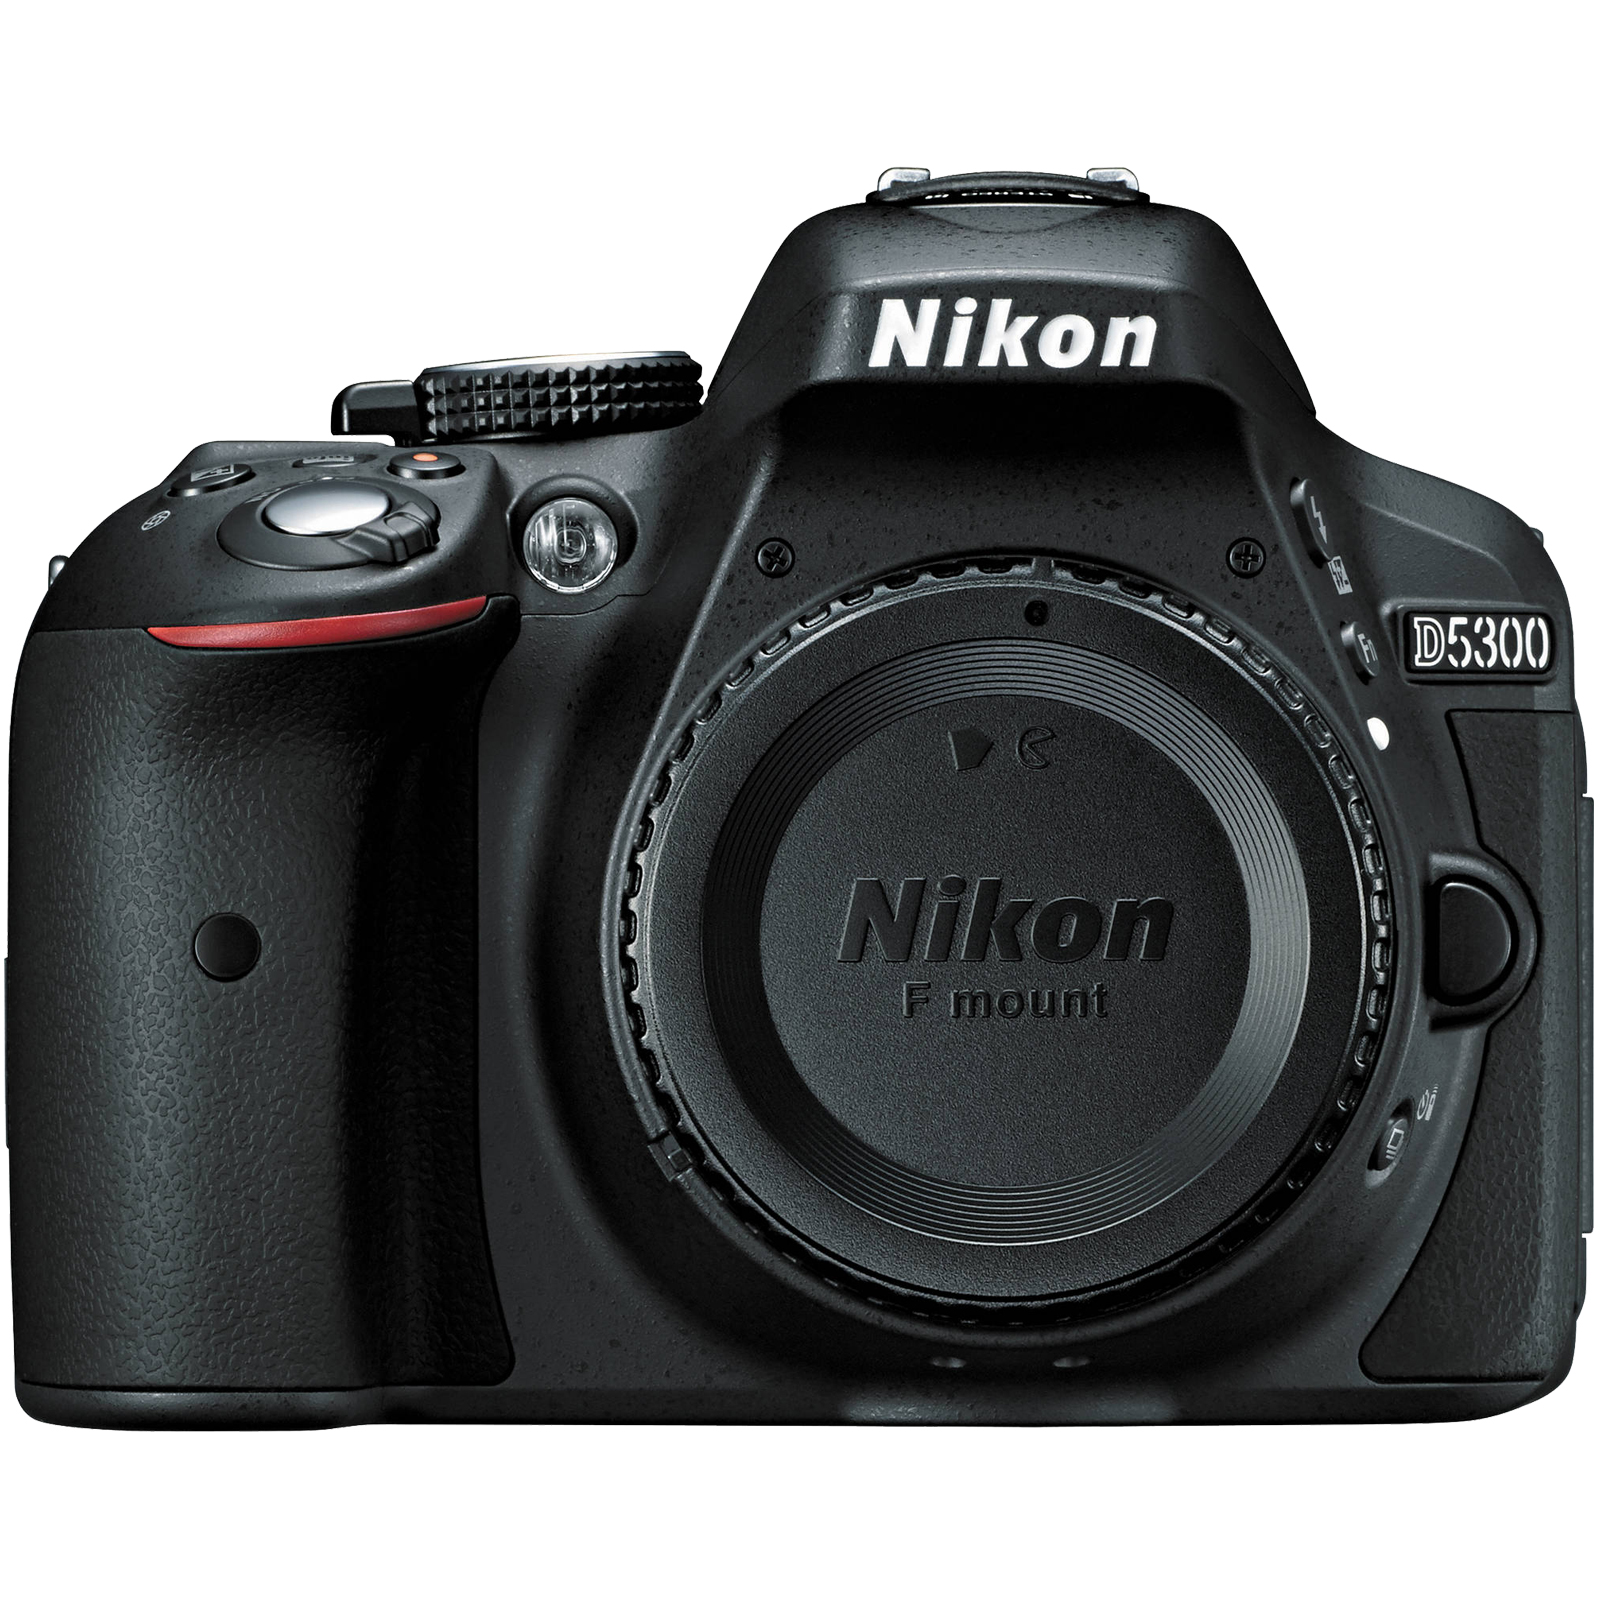 Nikon Black D5300 DSLR Camera with 24.2 Megapixels, Body